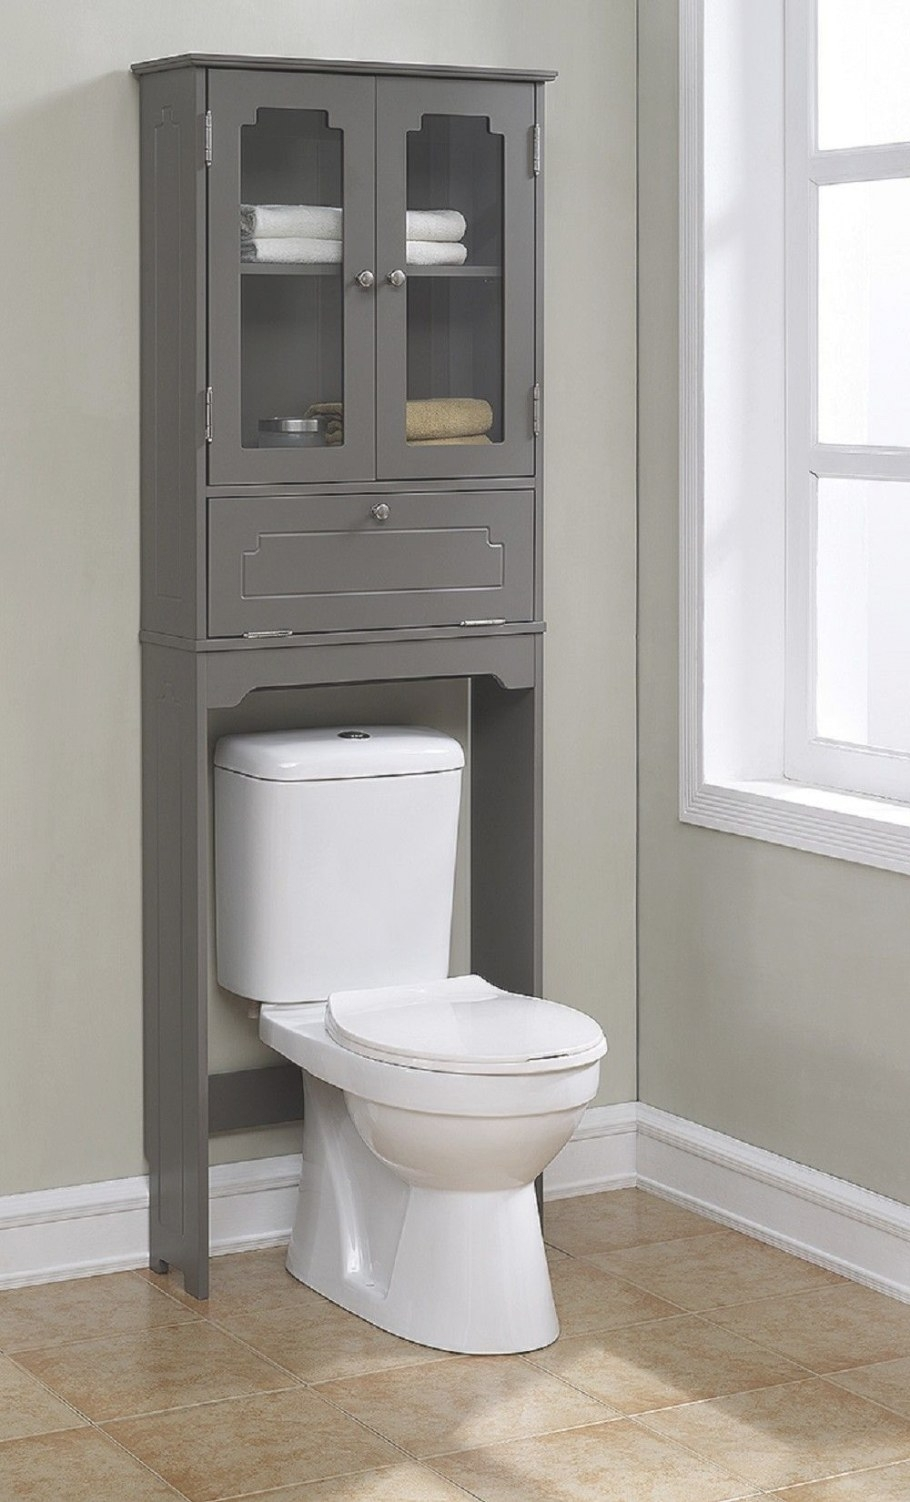 Features: -Elegant Etagere With 2 Glass Doors, 1 in Over The Toilet Storage